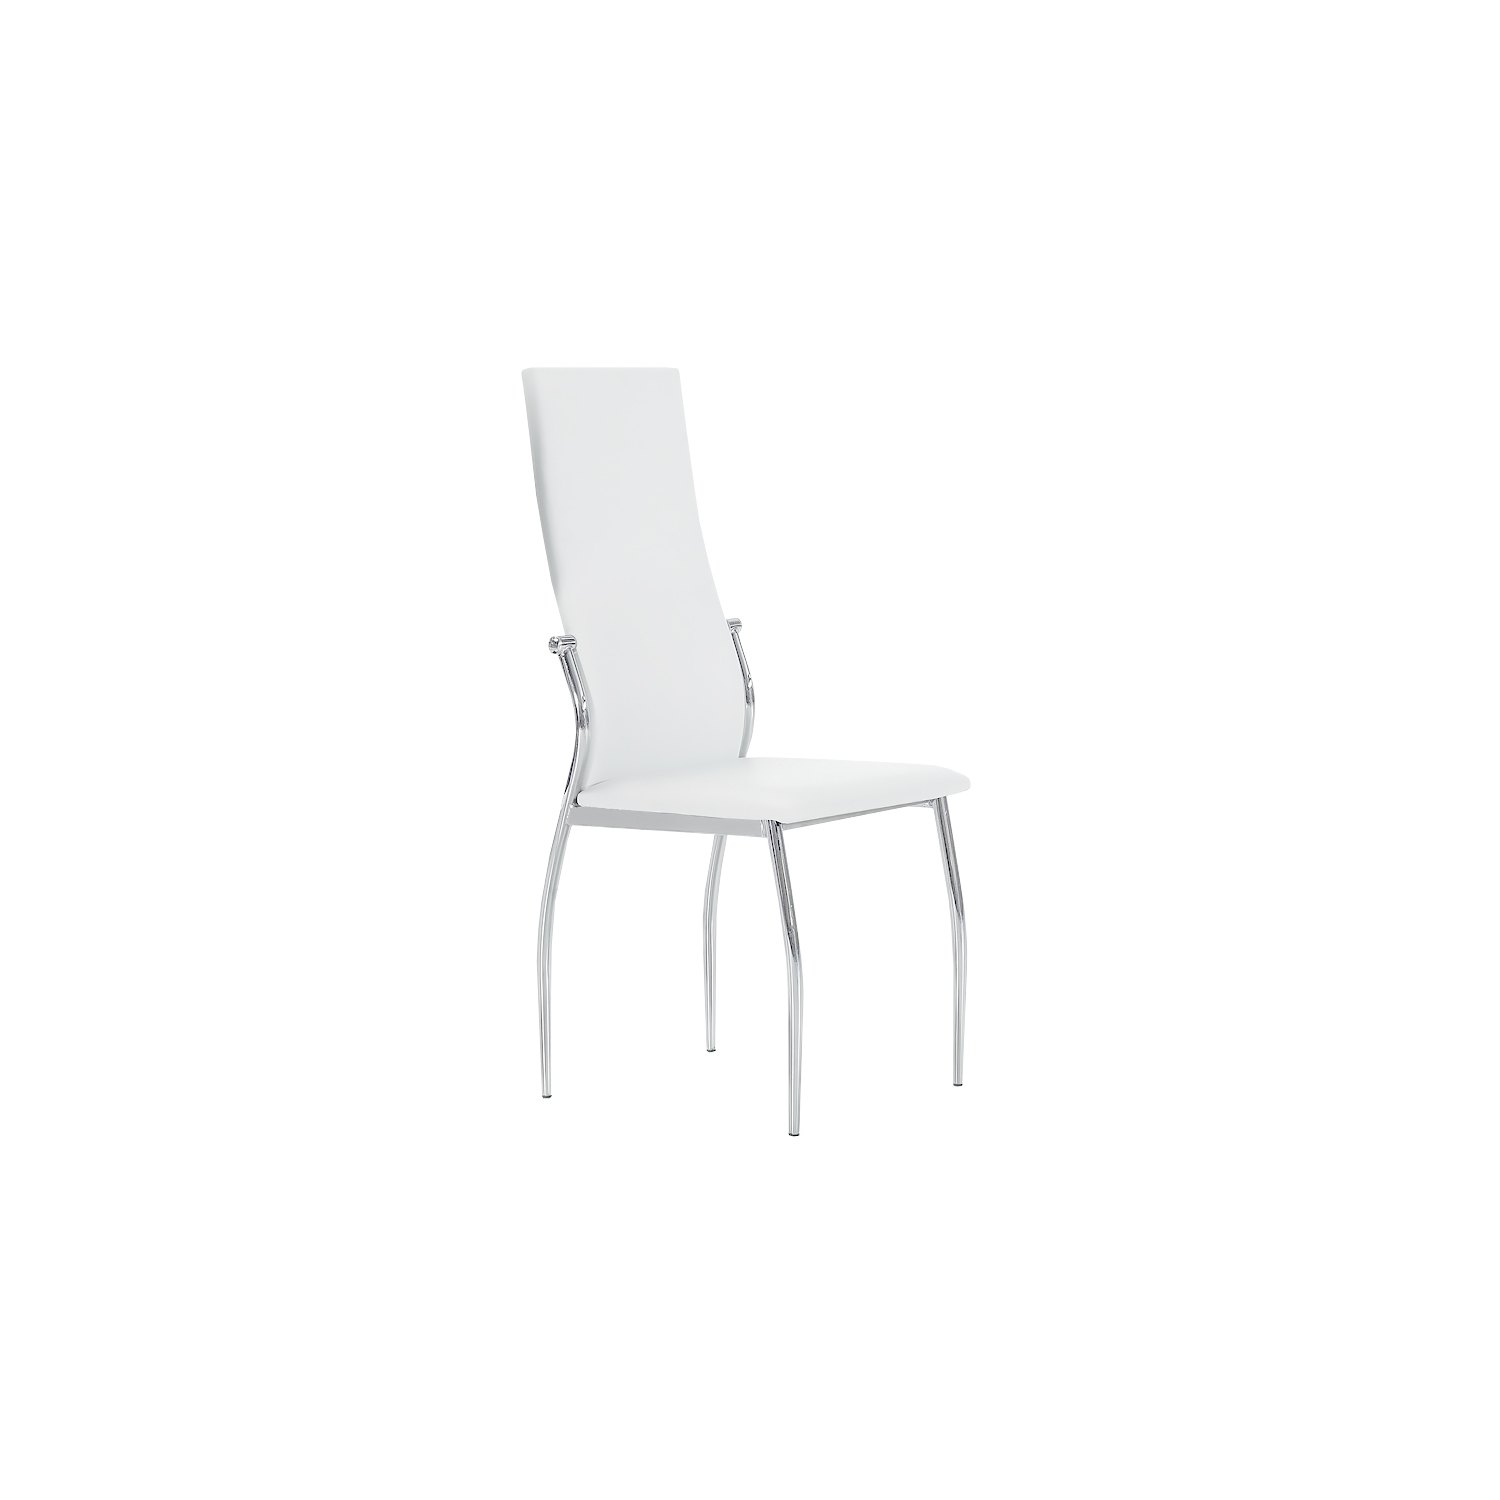 Comprar silla tapizada barata dise o boston blanca por for Sillas salon blancas